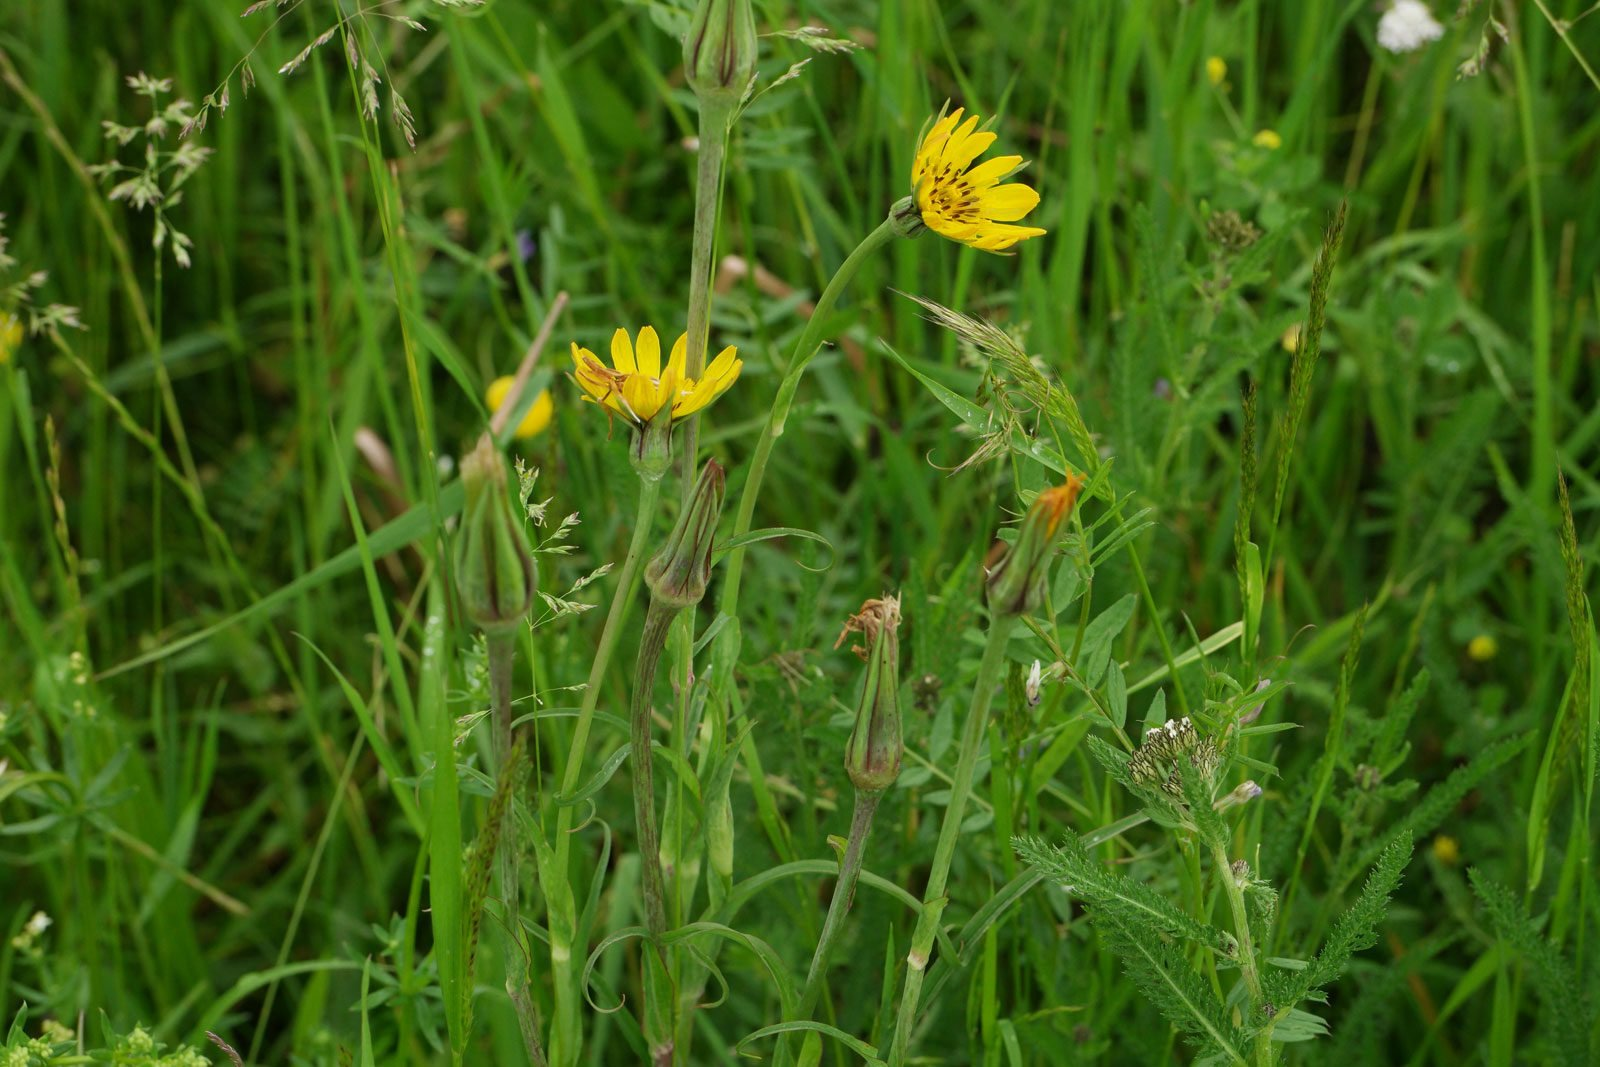 Meadow Goats-Beard